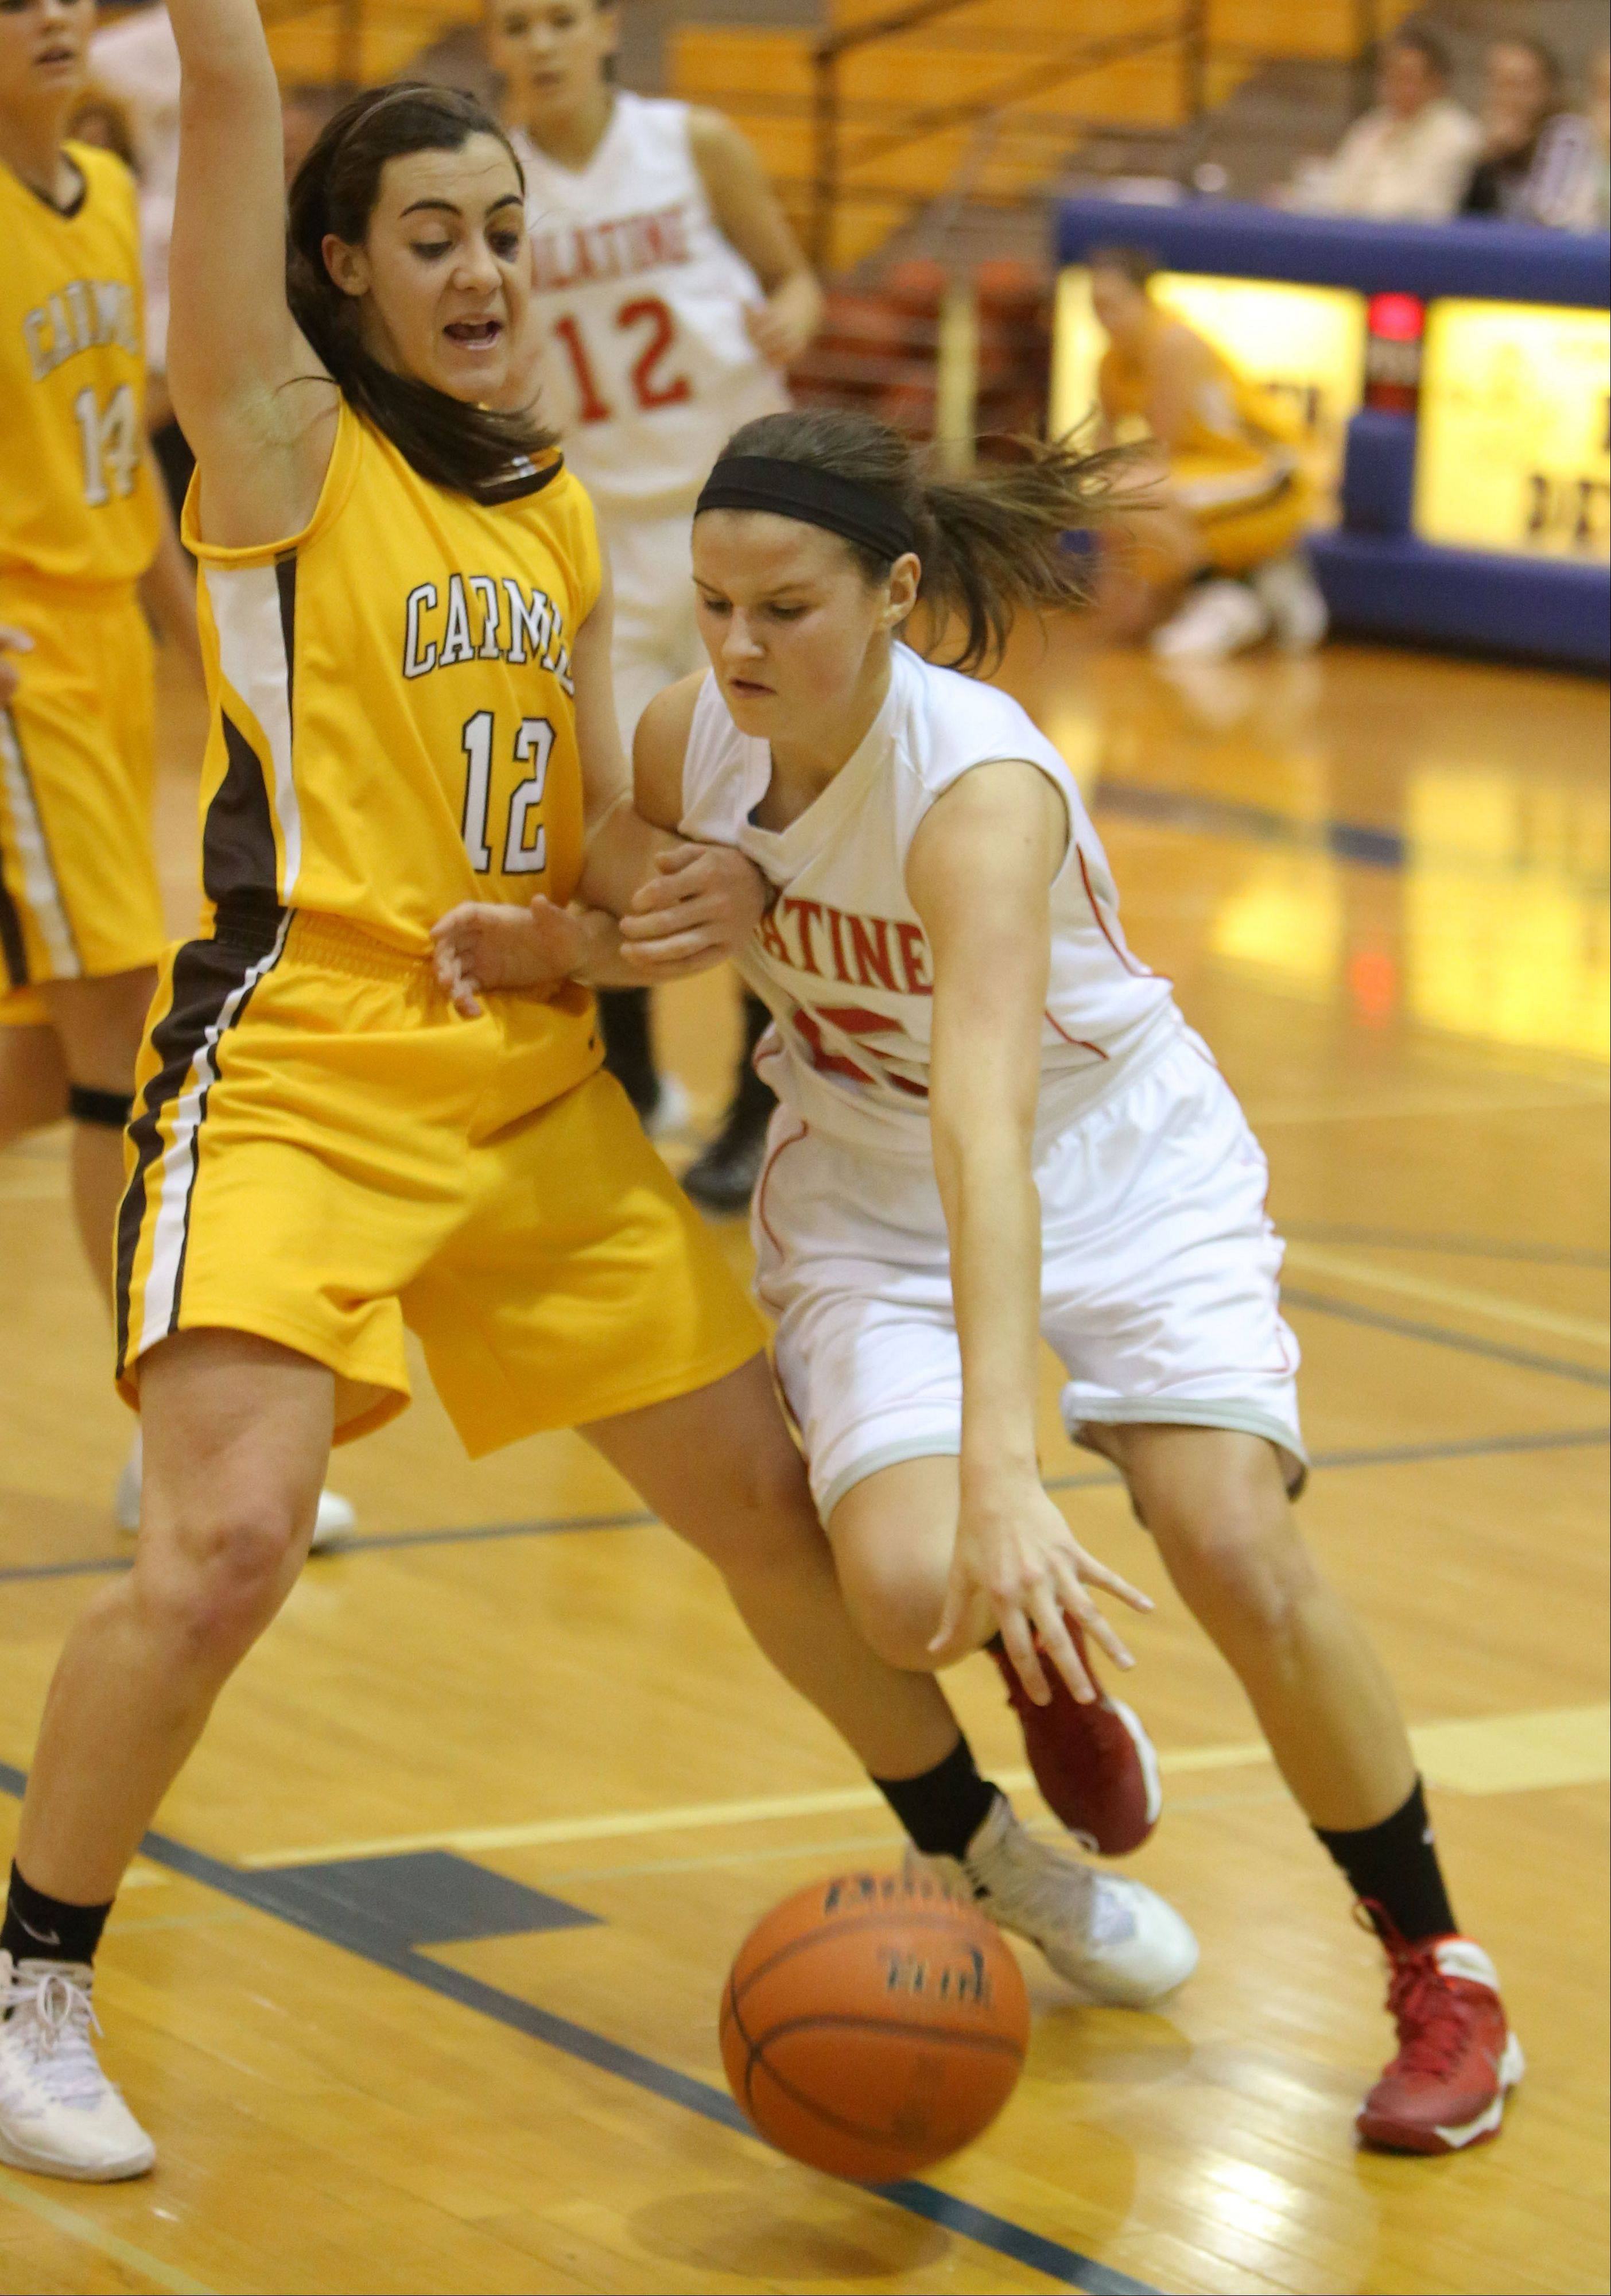 Palatine's Erin Mayer, right, drives on Carmel's Kathleen Felicelli during their game Friday at Warren High School.